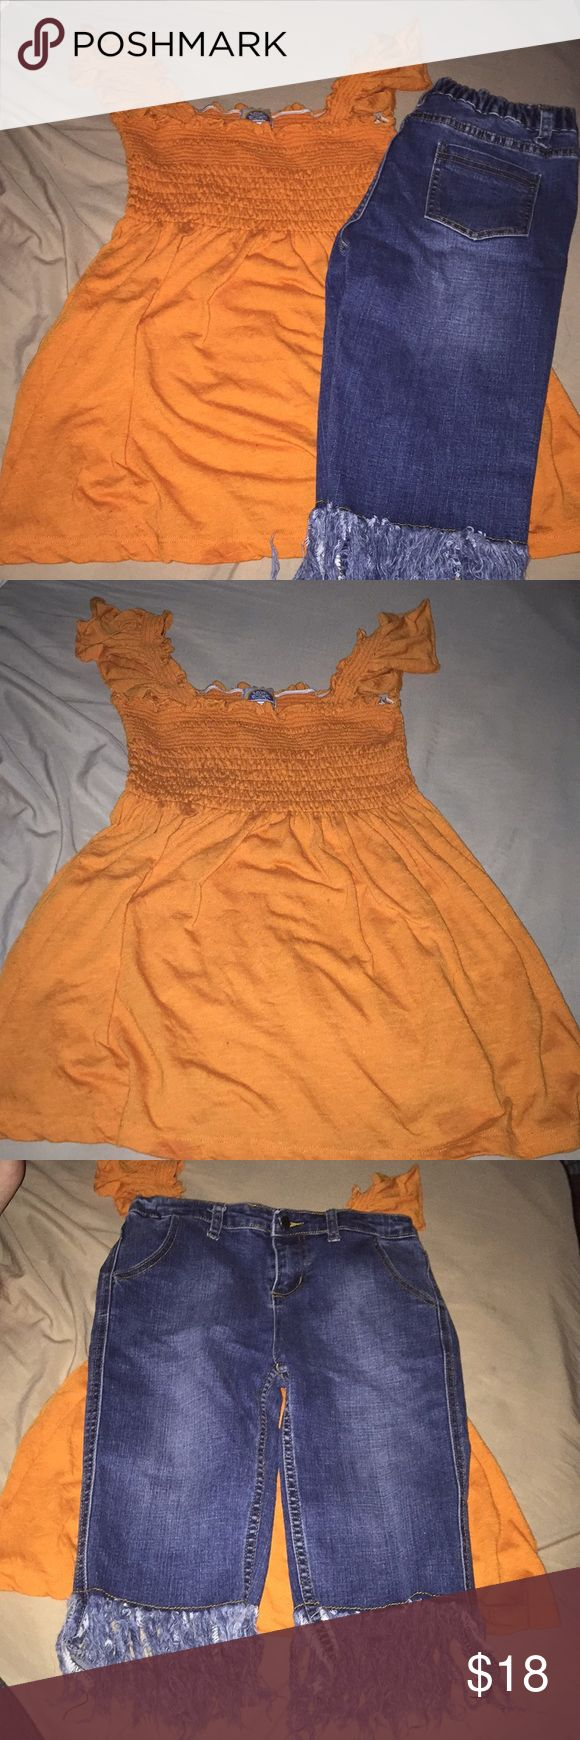 Cute Little Girls Outfit Size 13-14 Adorable little girls outfit in great condition. The shirt is by Love Rocks and is a great orange color. The shorts are Bermuda shorts with like fringes at the bottom. They are Hayden Girls brand and are in excellent condition. Both are size 13-14. From a pet free smoke free home. Love Rocks Matching Sets